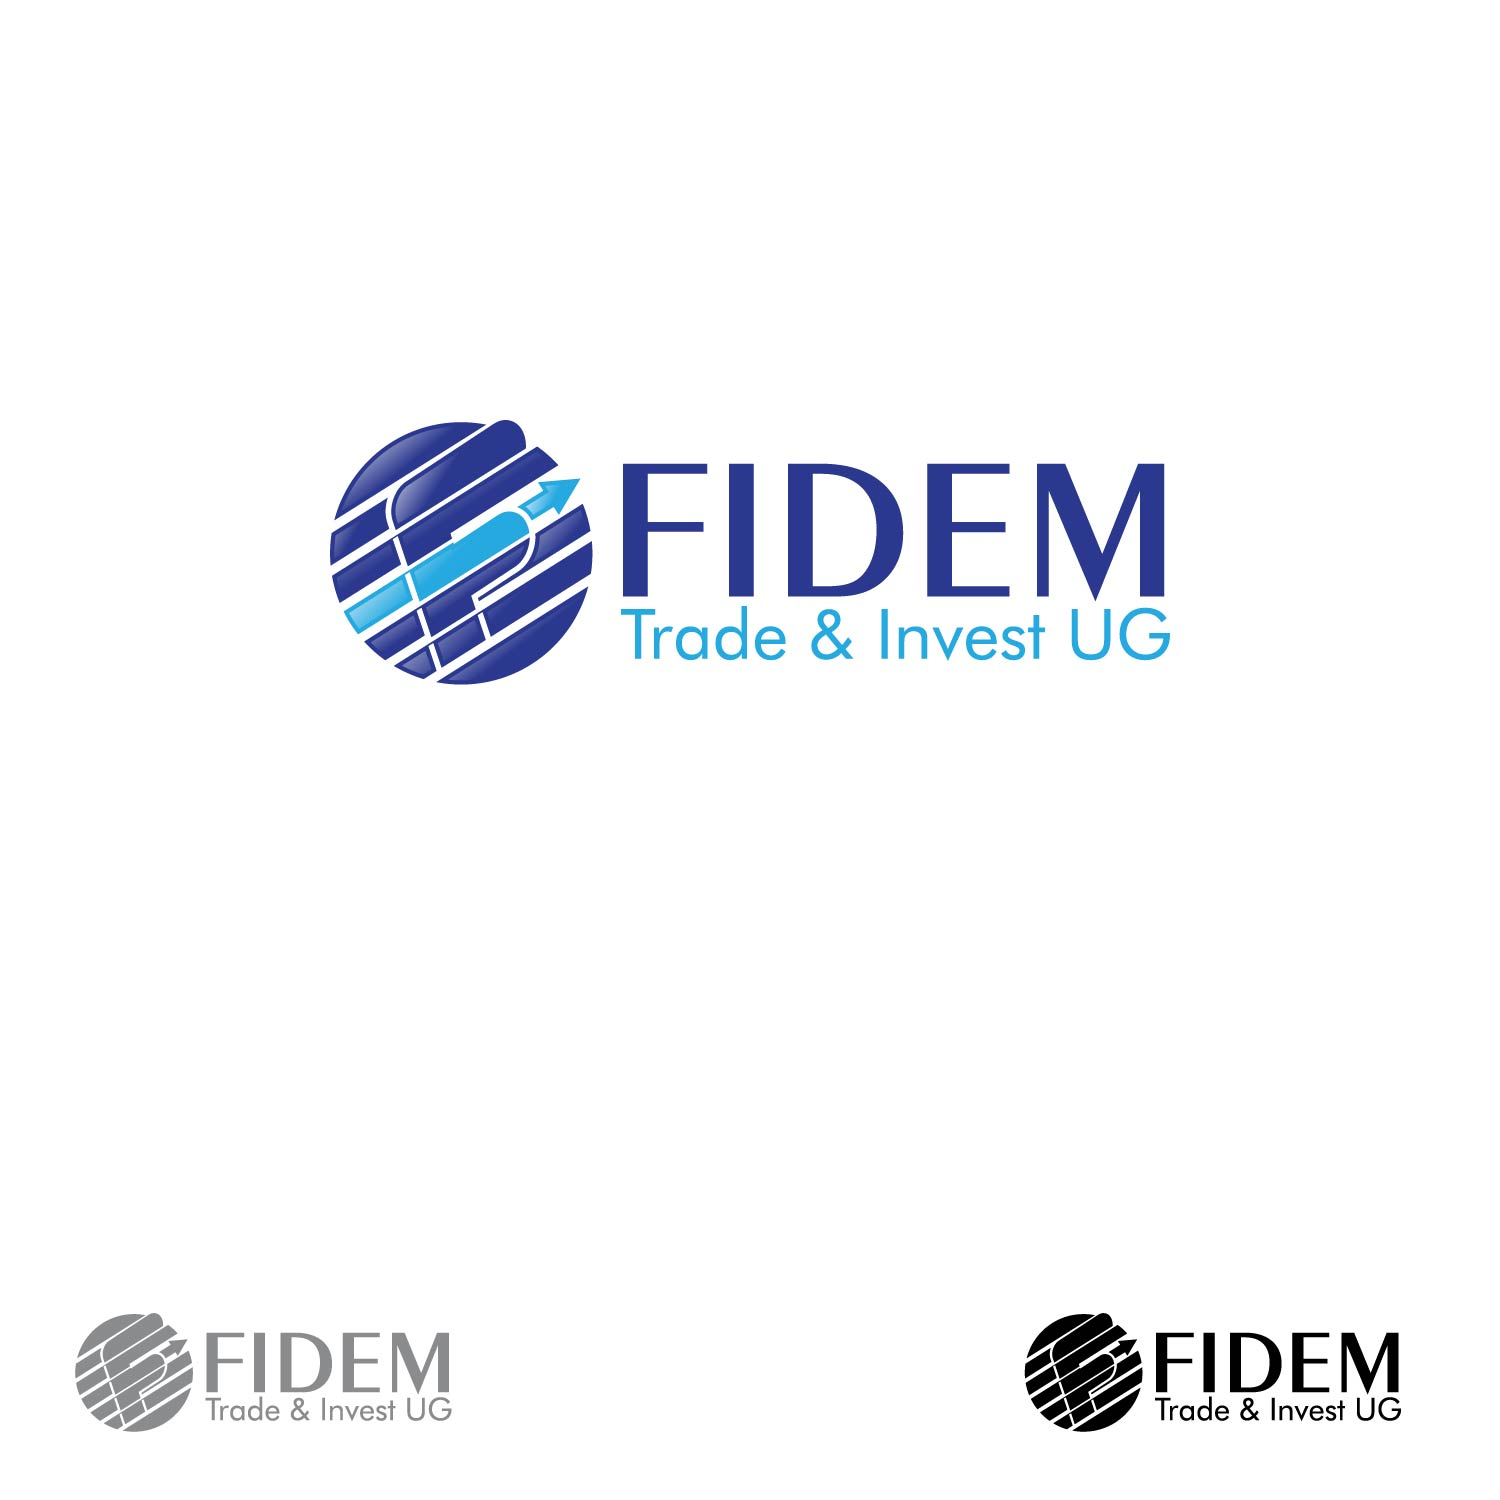 Logo Design by lagalag - Entry No. 101 in the Logo Design Contest Professional Logo Design for FIDEM Trade & Invest UG.